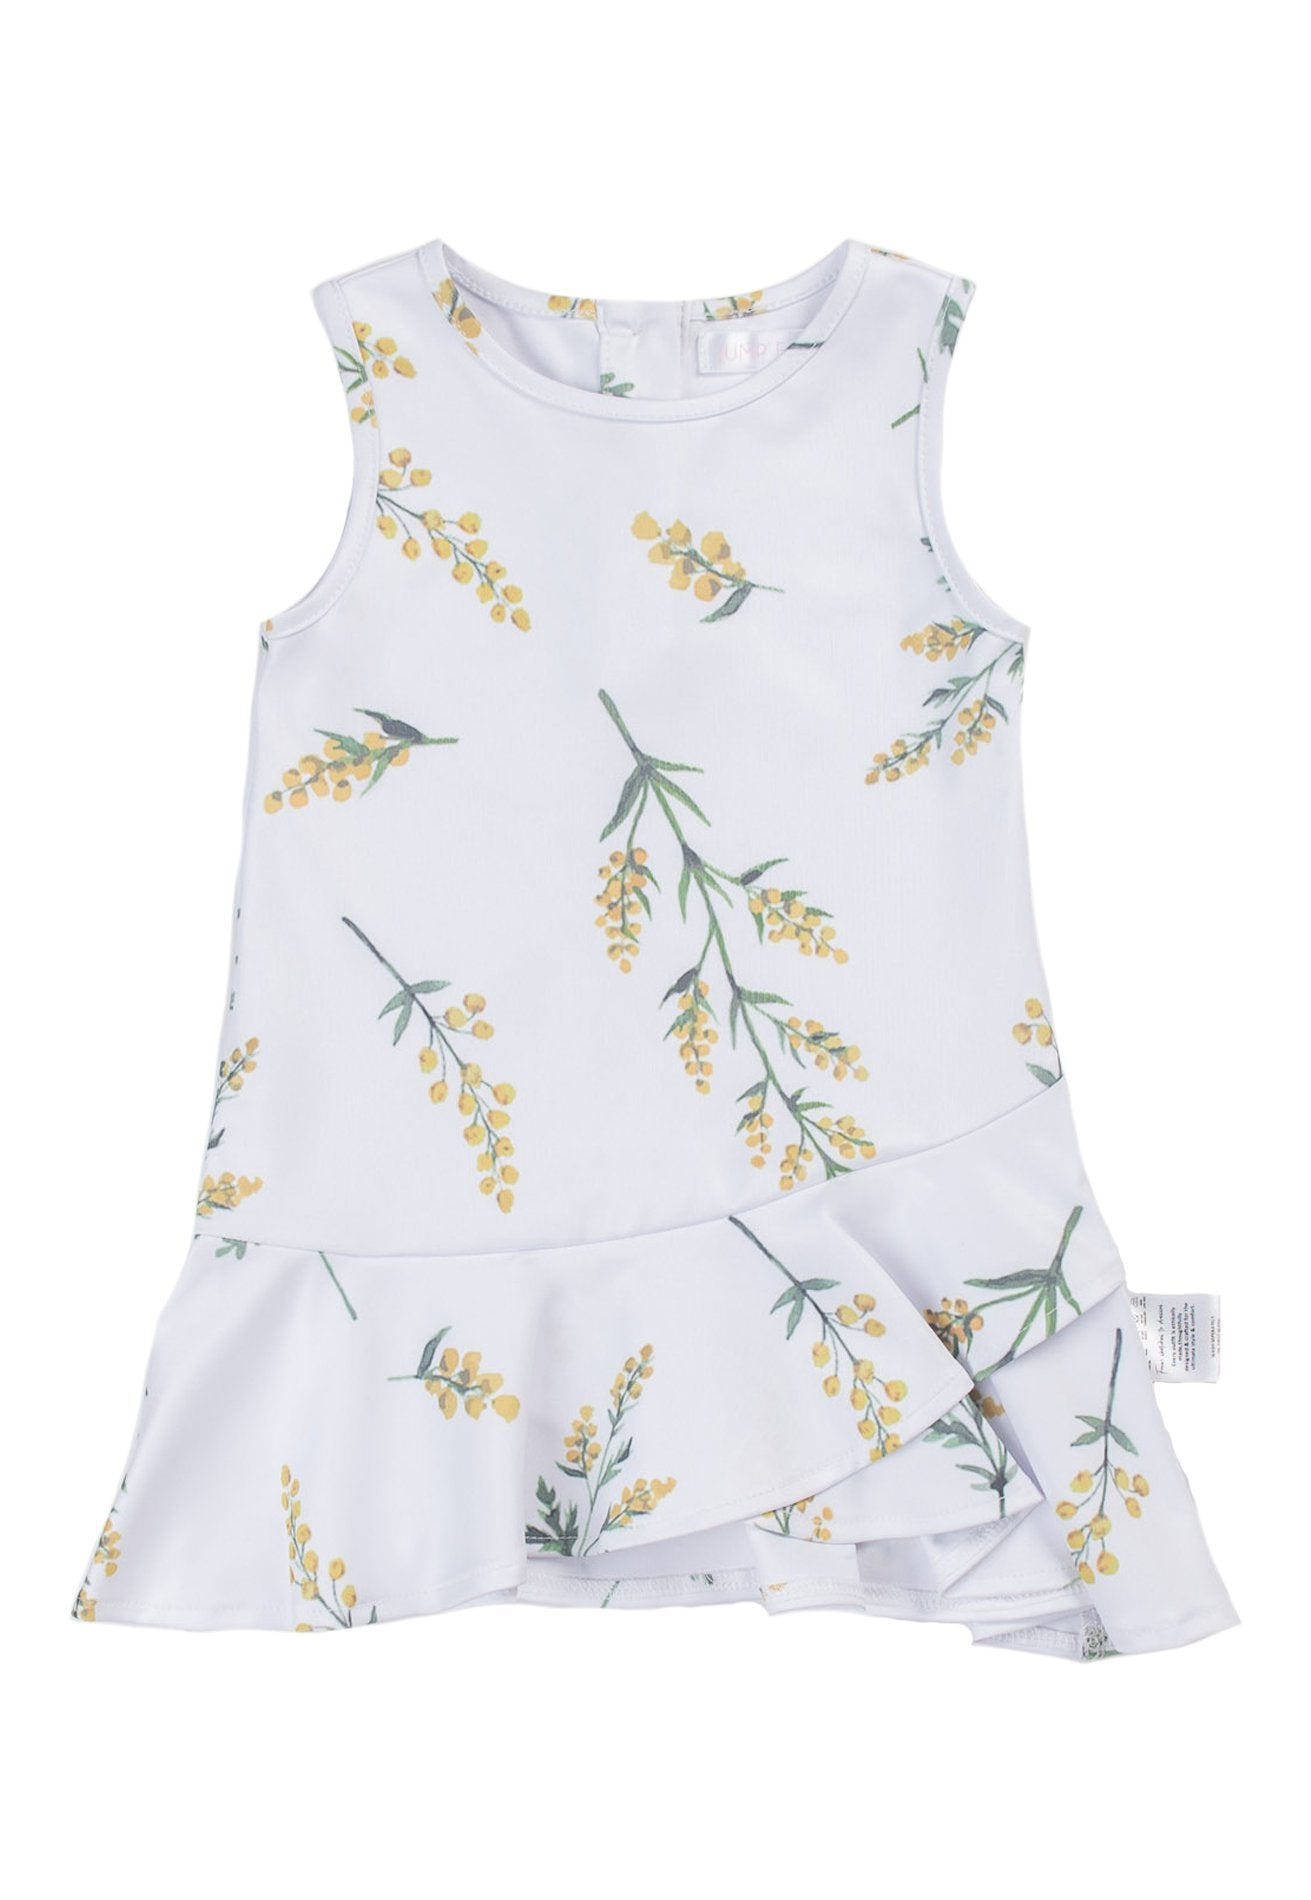 Olivia Printed Flowers Girl Dress Matching Sets Jump Eat Cry